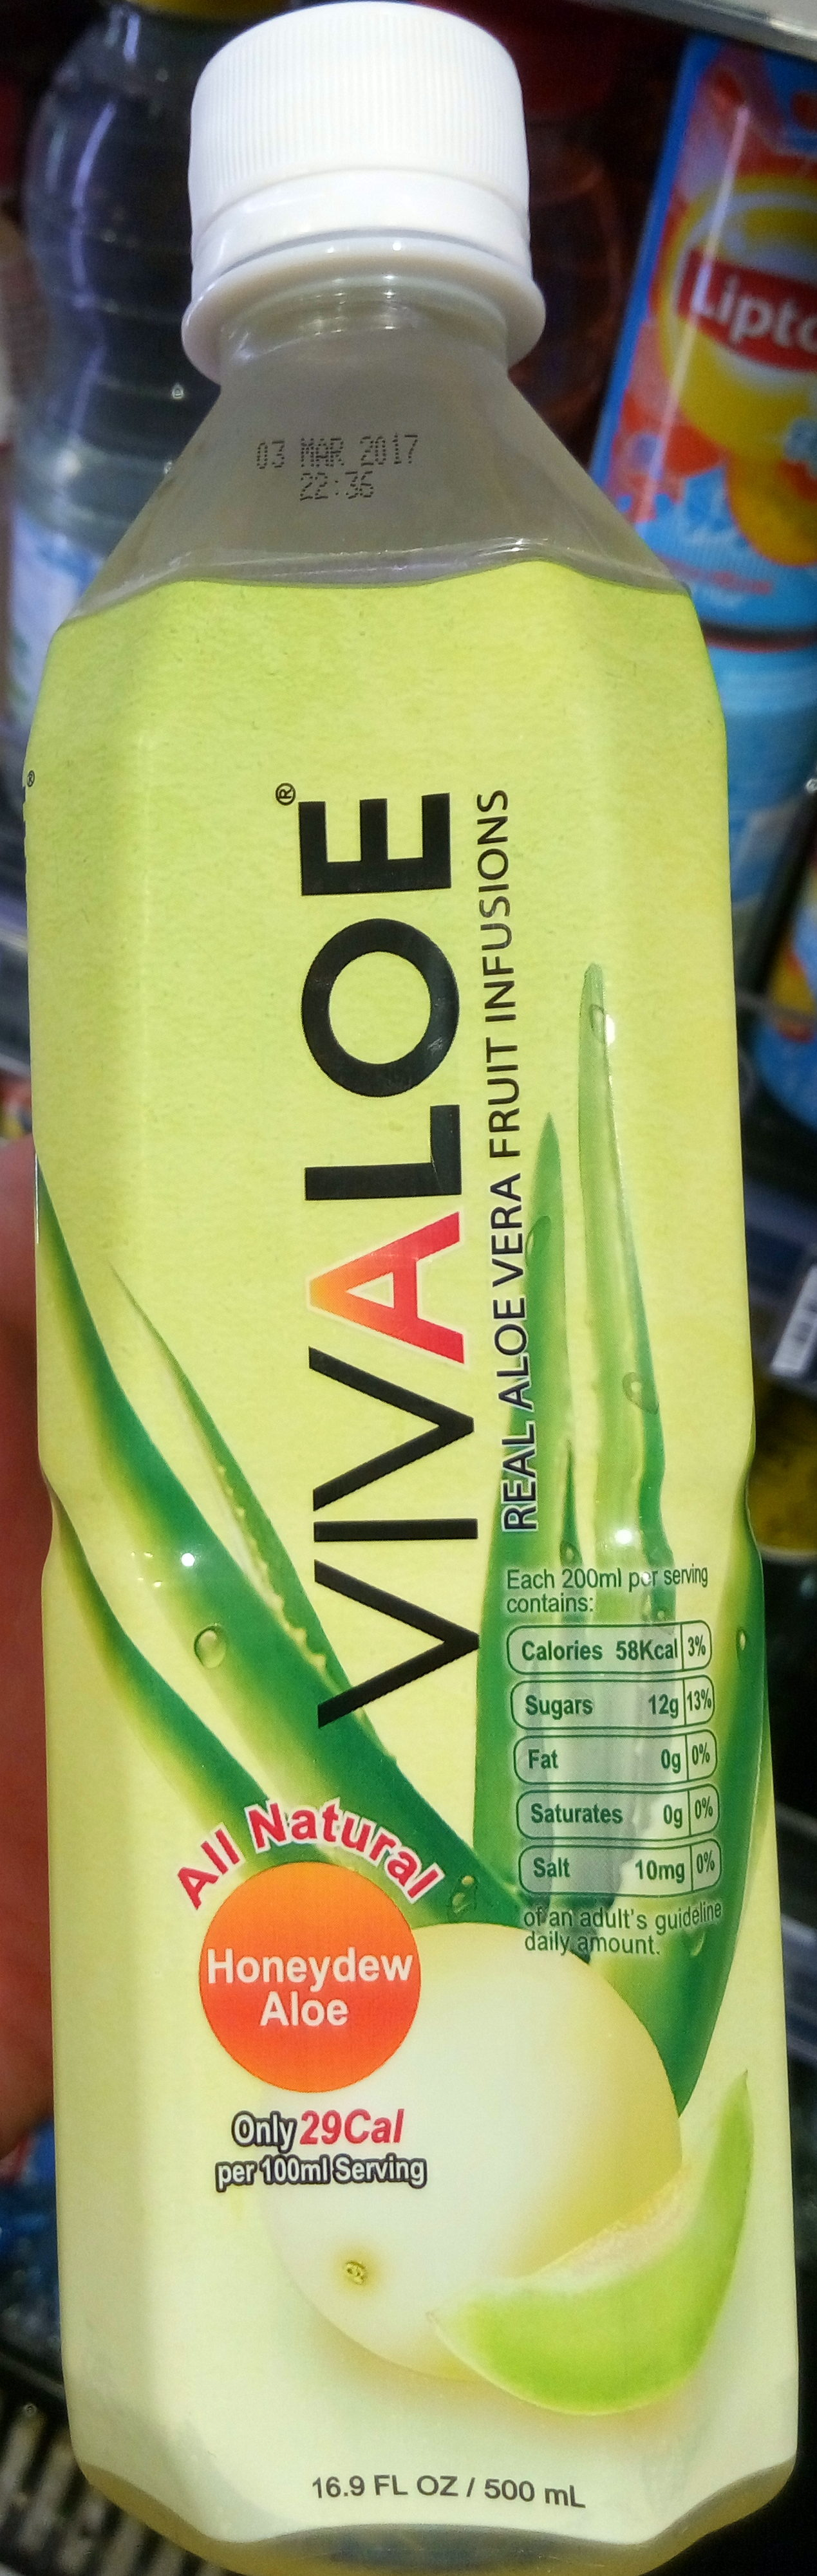 Vivaloé Honeydew Aloe - Product - en